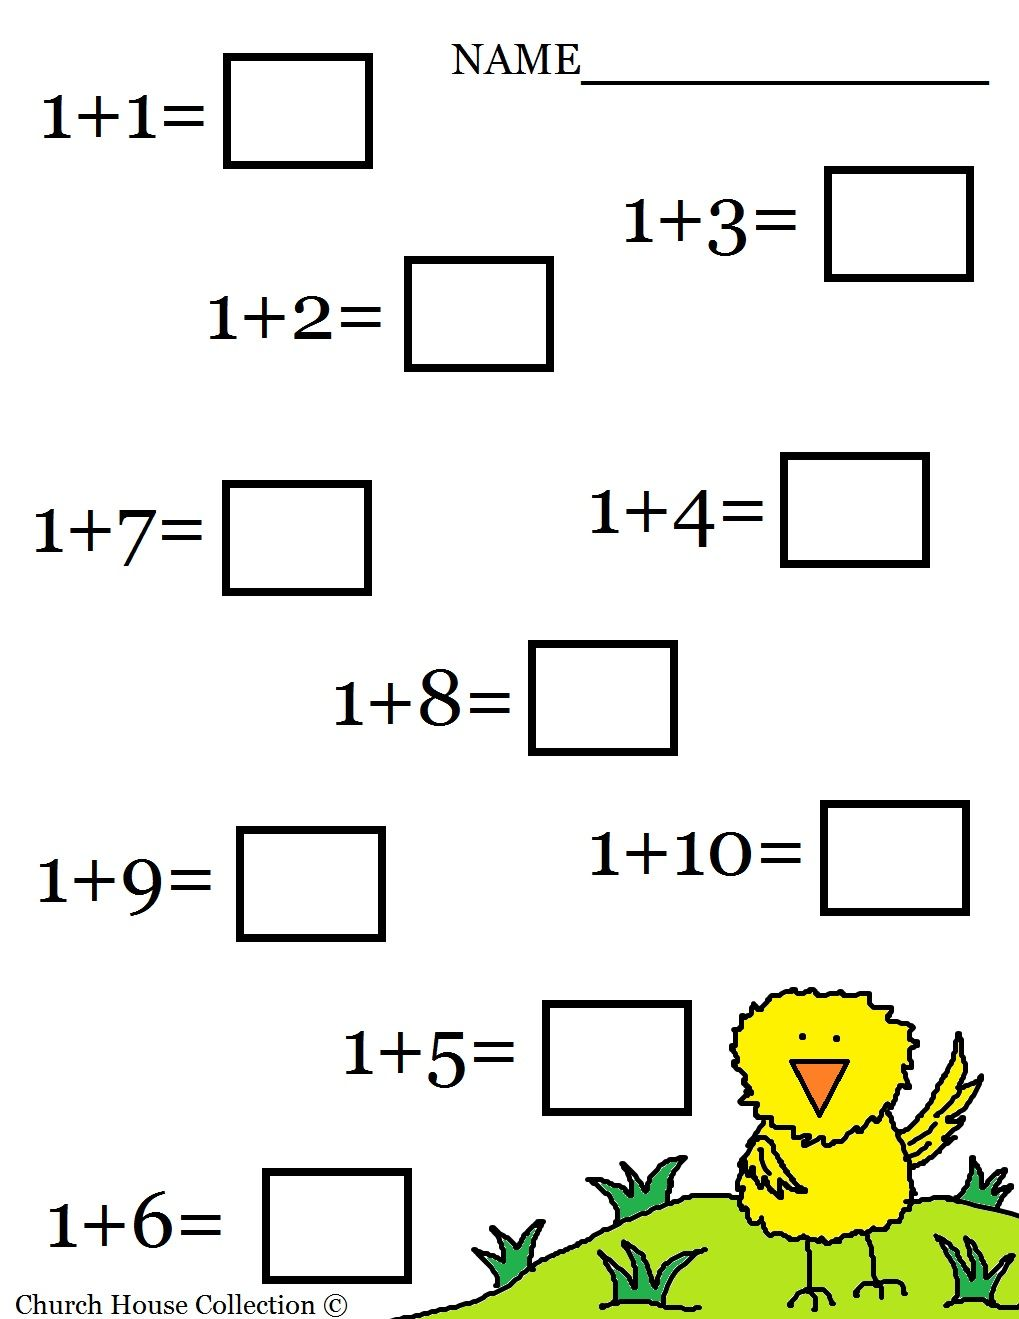 Aldiablosus  Stunning  Images About Worksheets  Math On Pinterest  Math Sheets  With Exquisite  Images About Worksheets  Math On Pinterest  Math Sheets Math Worksheets For Kindergarten And Simple Addition With Cute Spanish Reading Comprehension Practice Worksheets Also Incomplete Dominance Worksheets In Addition Matrix Inverse Worksheet And Free First Grade Math Worksheets Printable As Well As Free Timed Multiplication Worksheets Additionally  States Of Matter Worksheets From Pinterestcom With Aldiablosus  Exquisite  Images About Worksheets  Math On Pinterest  Math Sheets  With Cute  Images About Worksheets  Math On Pinterest  Math Sheets Math Worksheets For Kindergarten And Simple Addition And Stunning Spanish Reading Comprehension Practice Worksheets Also Incomplete Dominance Worksheets In Addition Matrix Inverse Worksheet From Pinterestcom